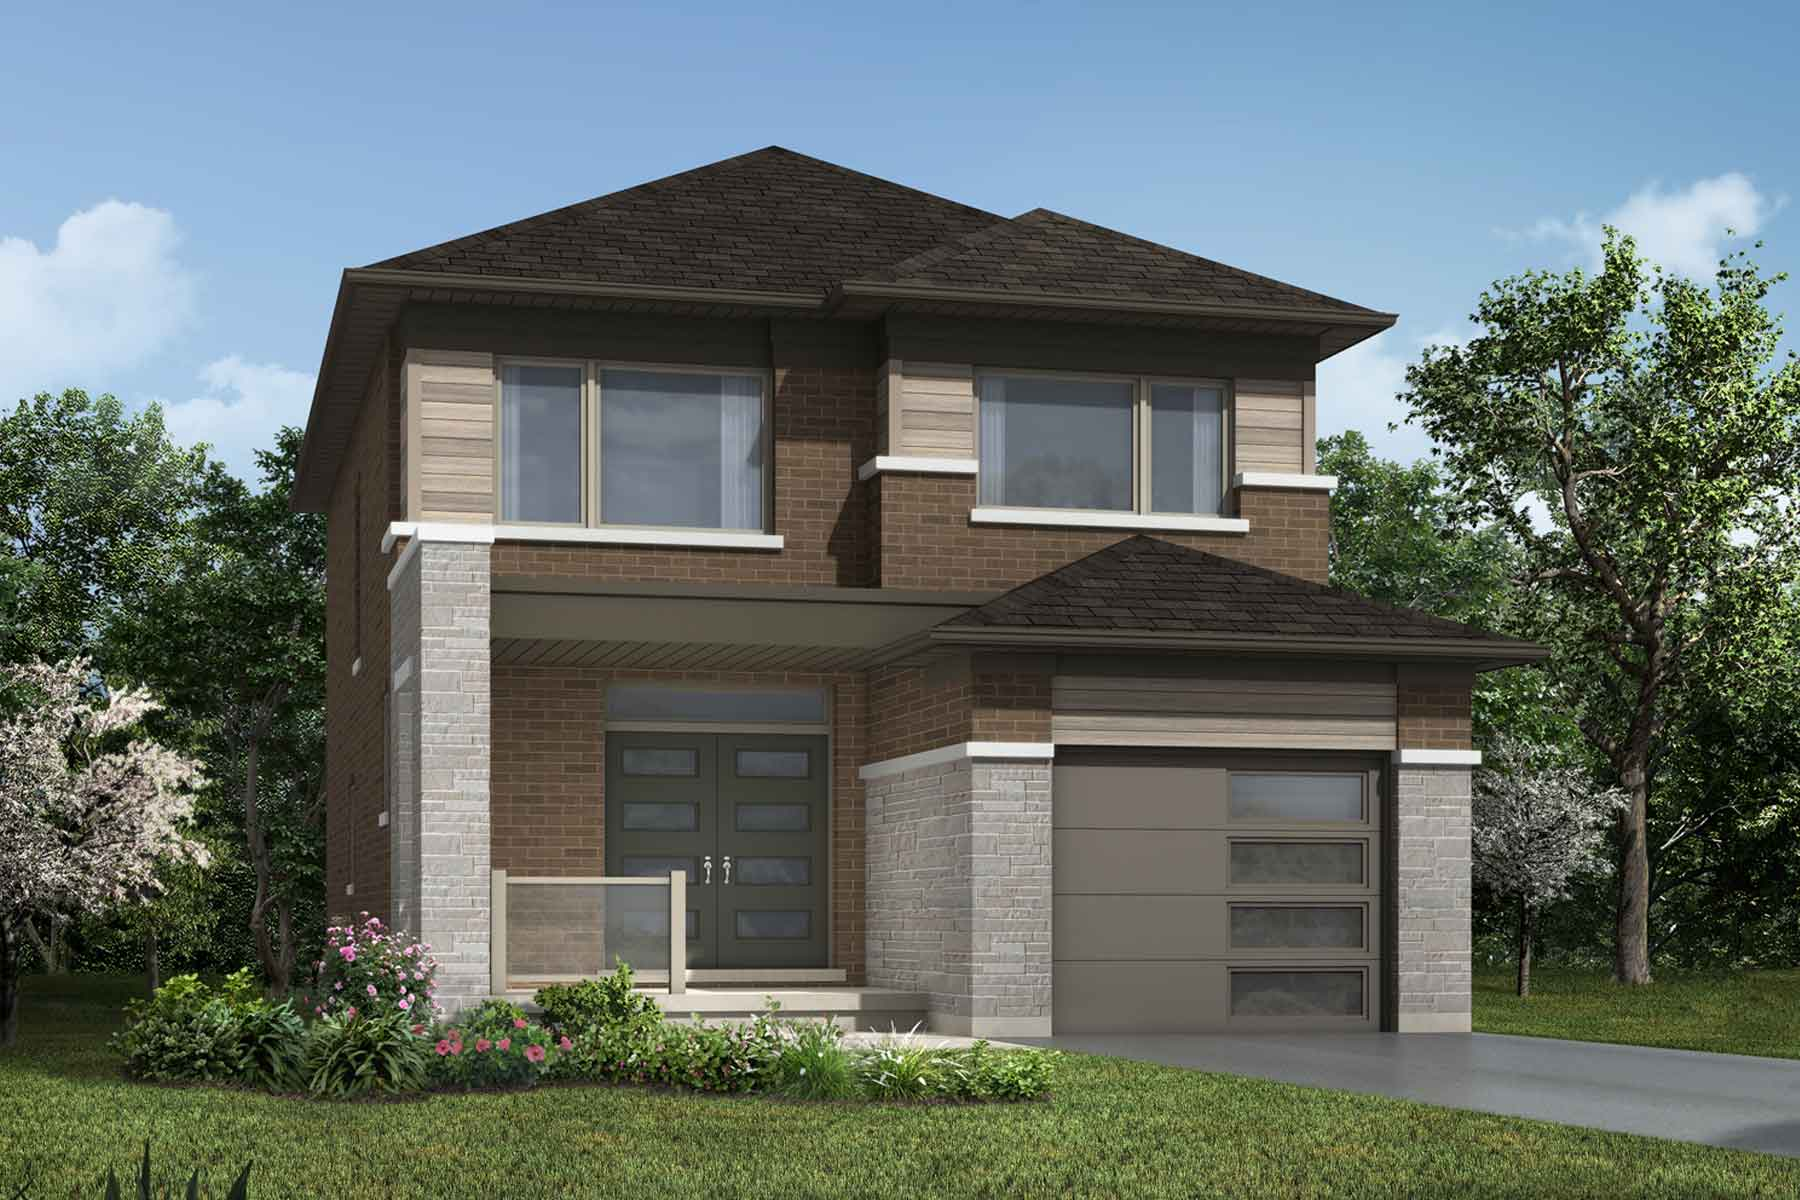 The Alderview Plan transitional_southestates_alderview_main at Wildflower Crossing in Kitchener Ontario by Mattamy Homes